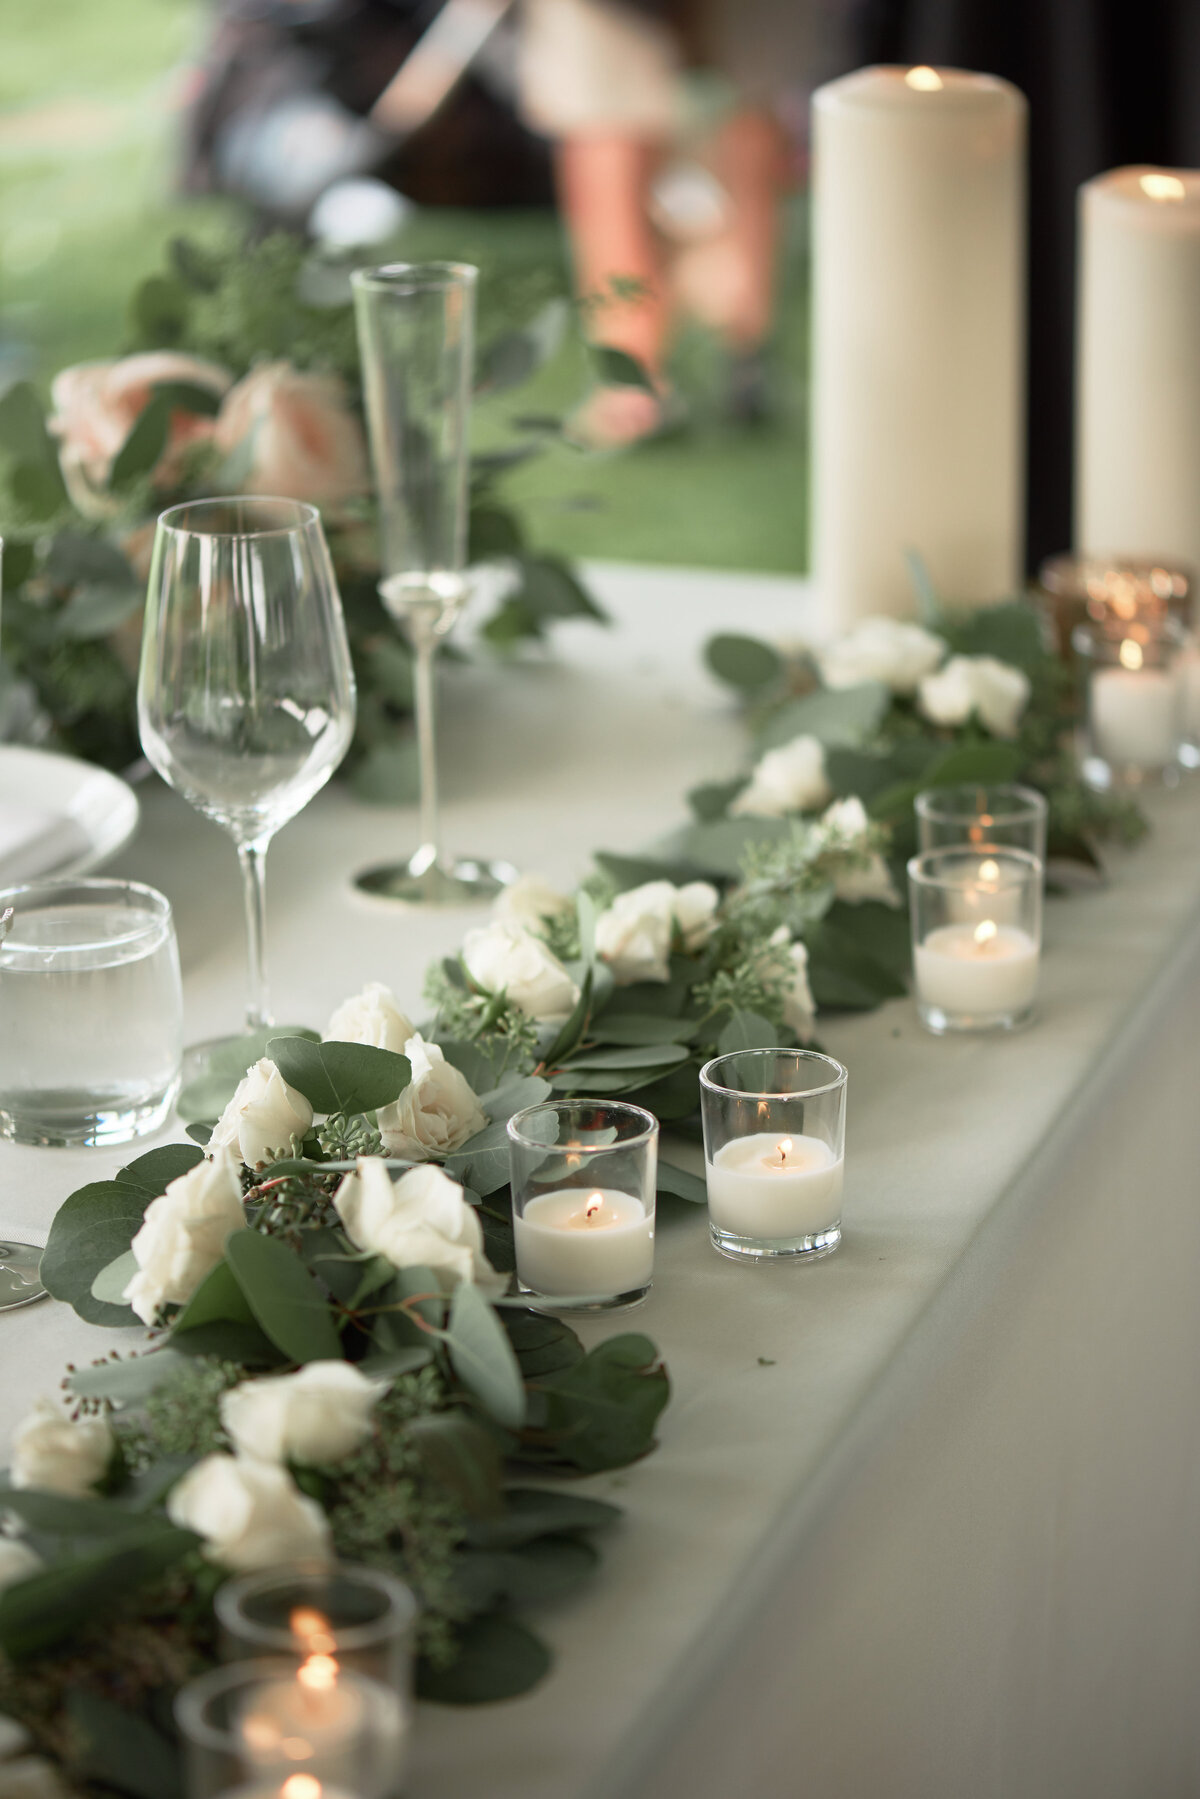 white-blush-greenery-wedding-head-table-candles-decor-25